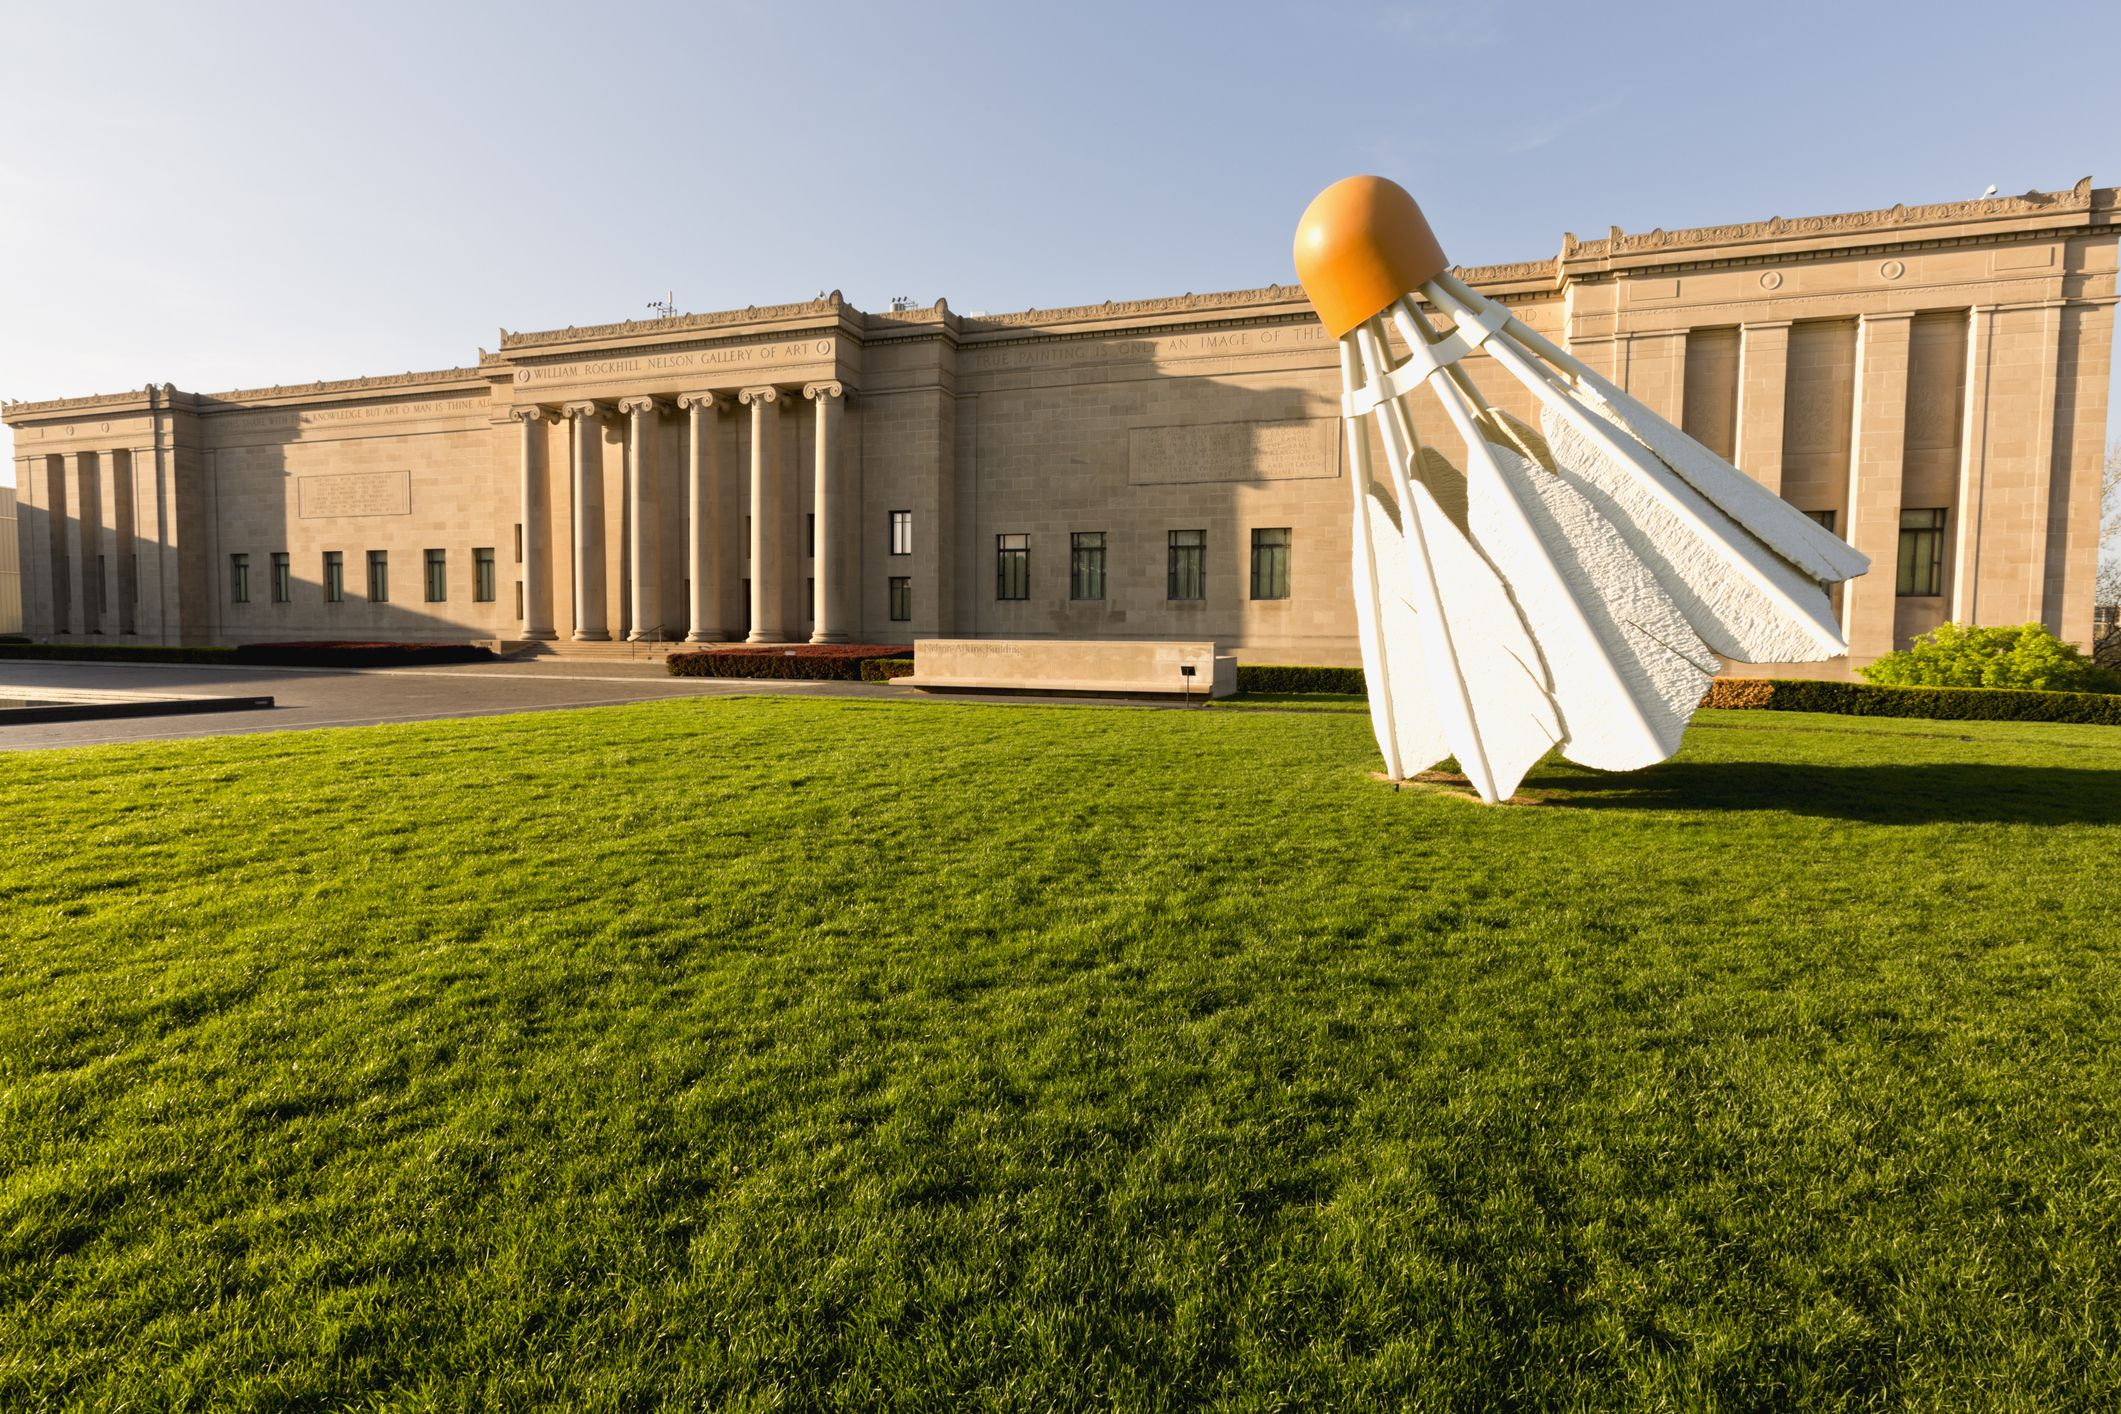 Shuttlecock sculpture on the lawn at the Nelson-Atkins Museum of Art